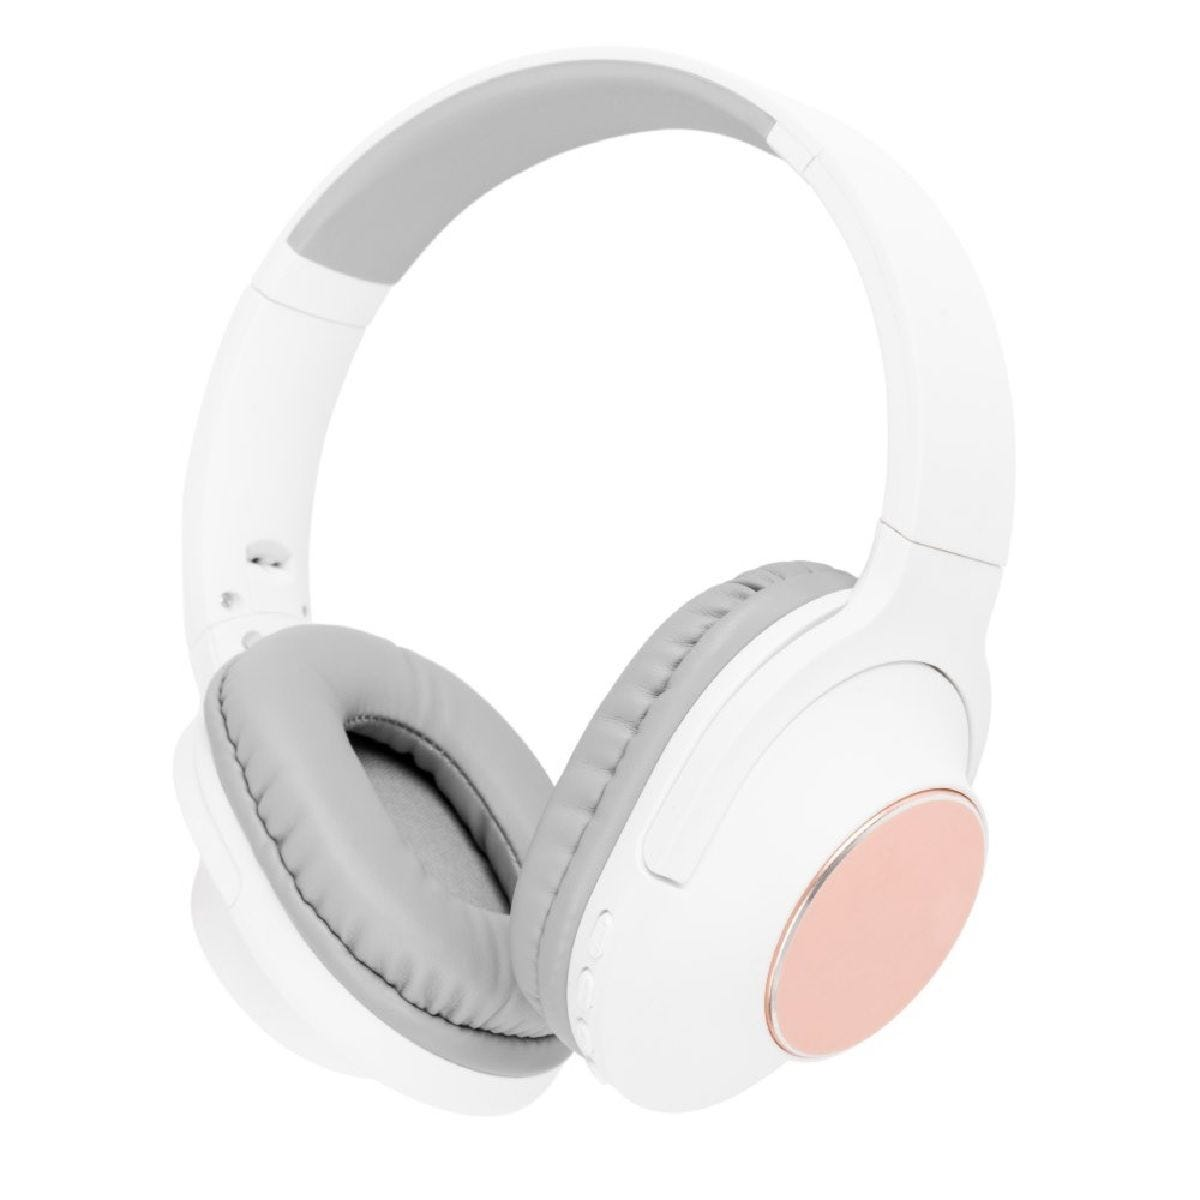 AKAI DYNMX On-Ear Bluetooth Headphones - Blush Gold